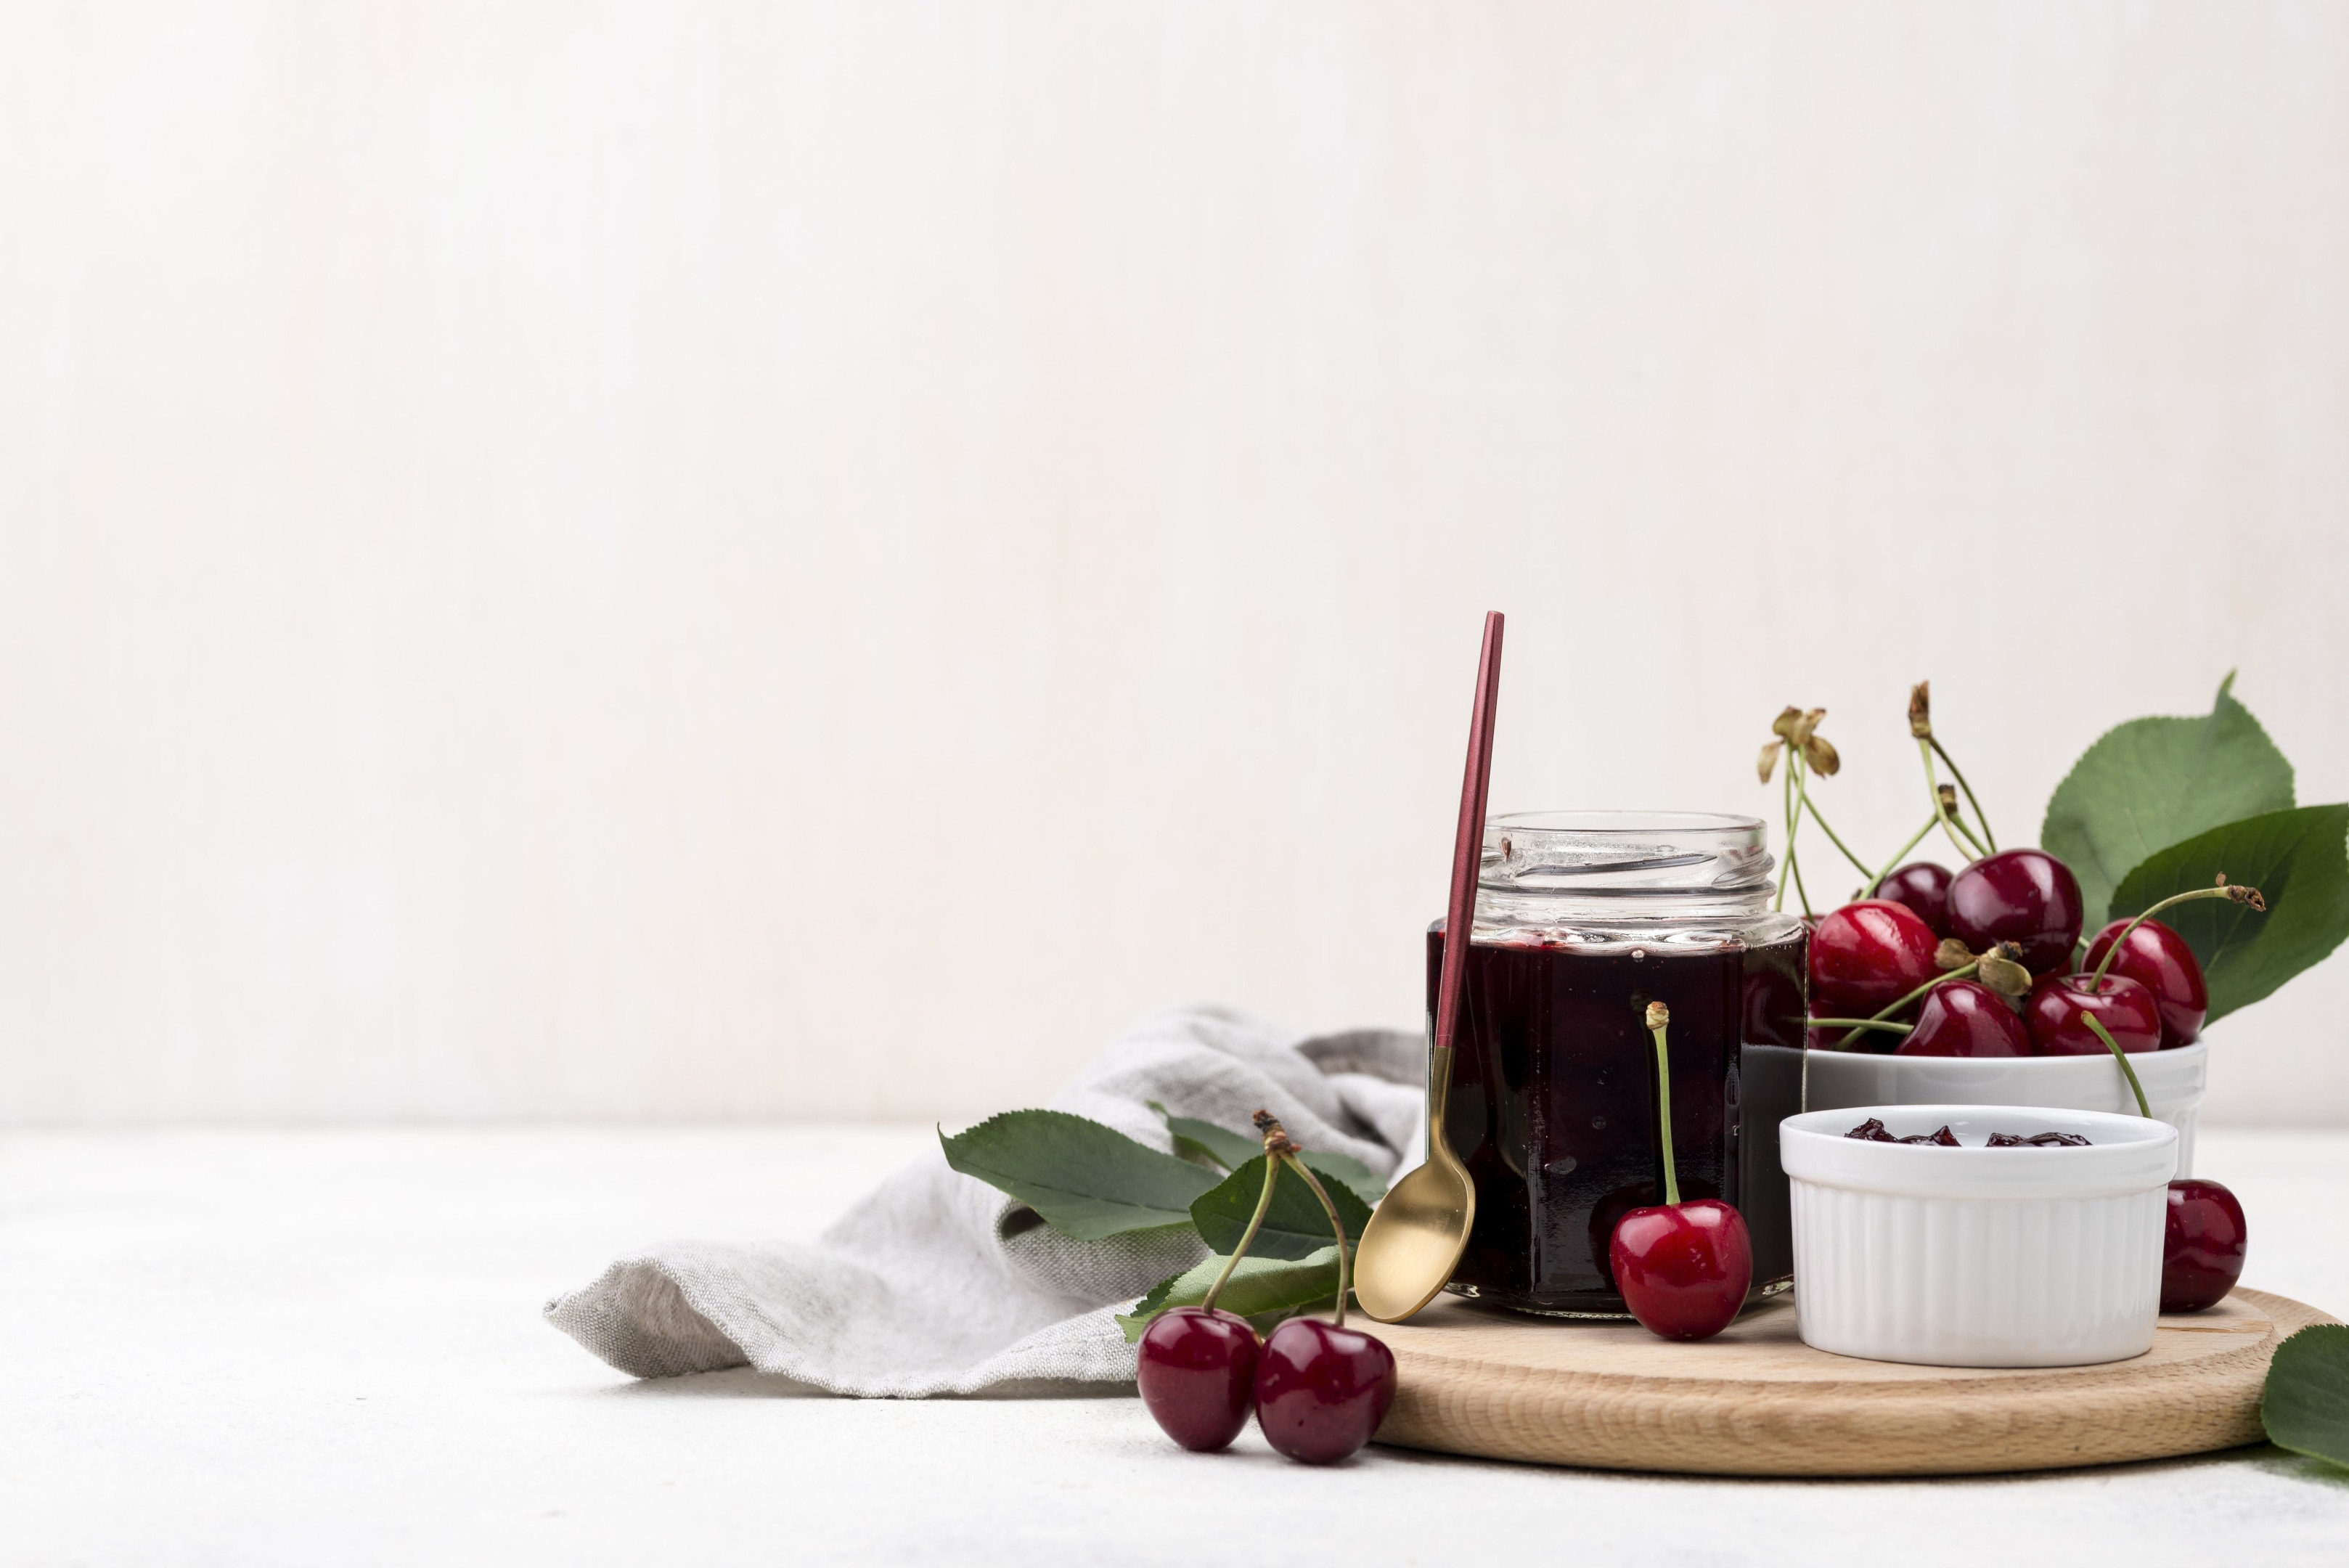 Cherries and cherry jam on wooden board